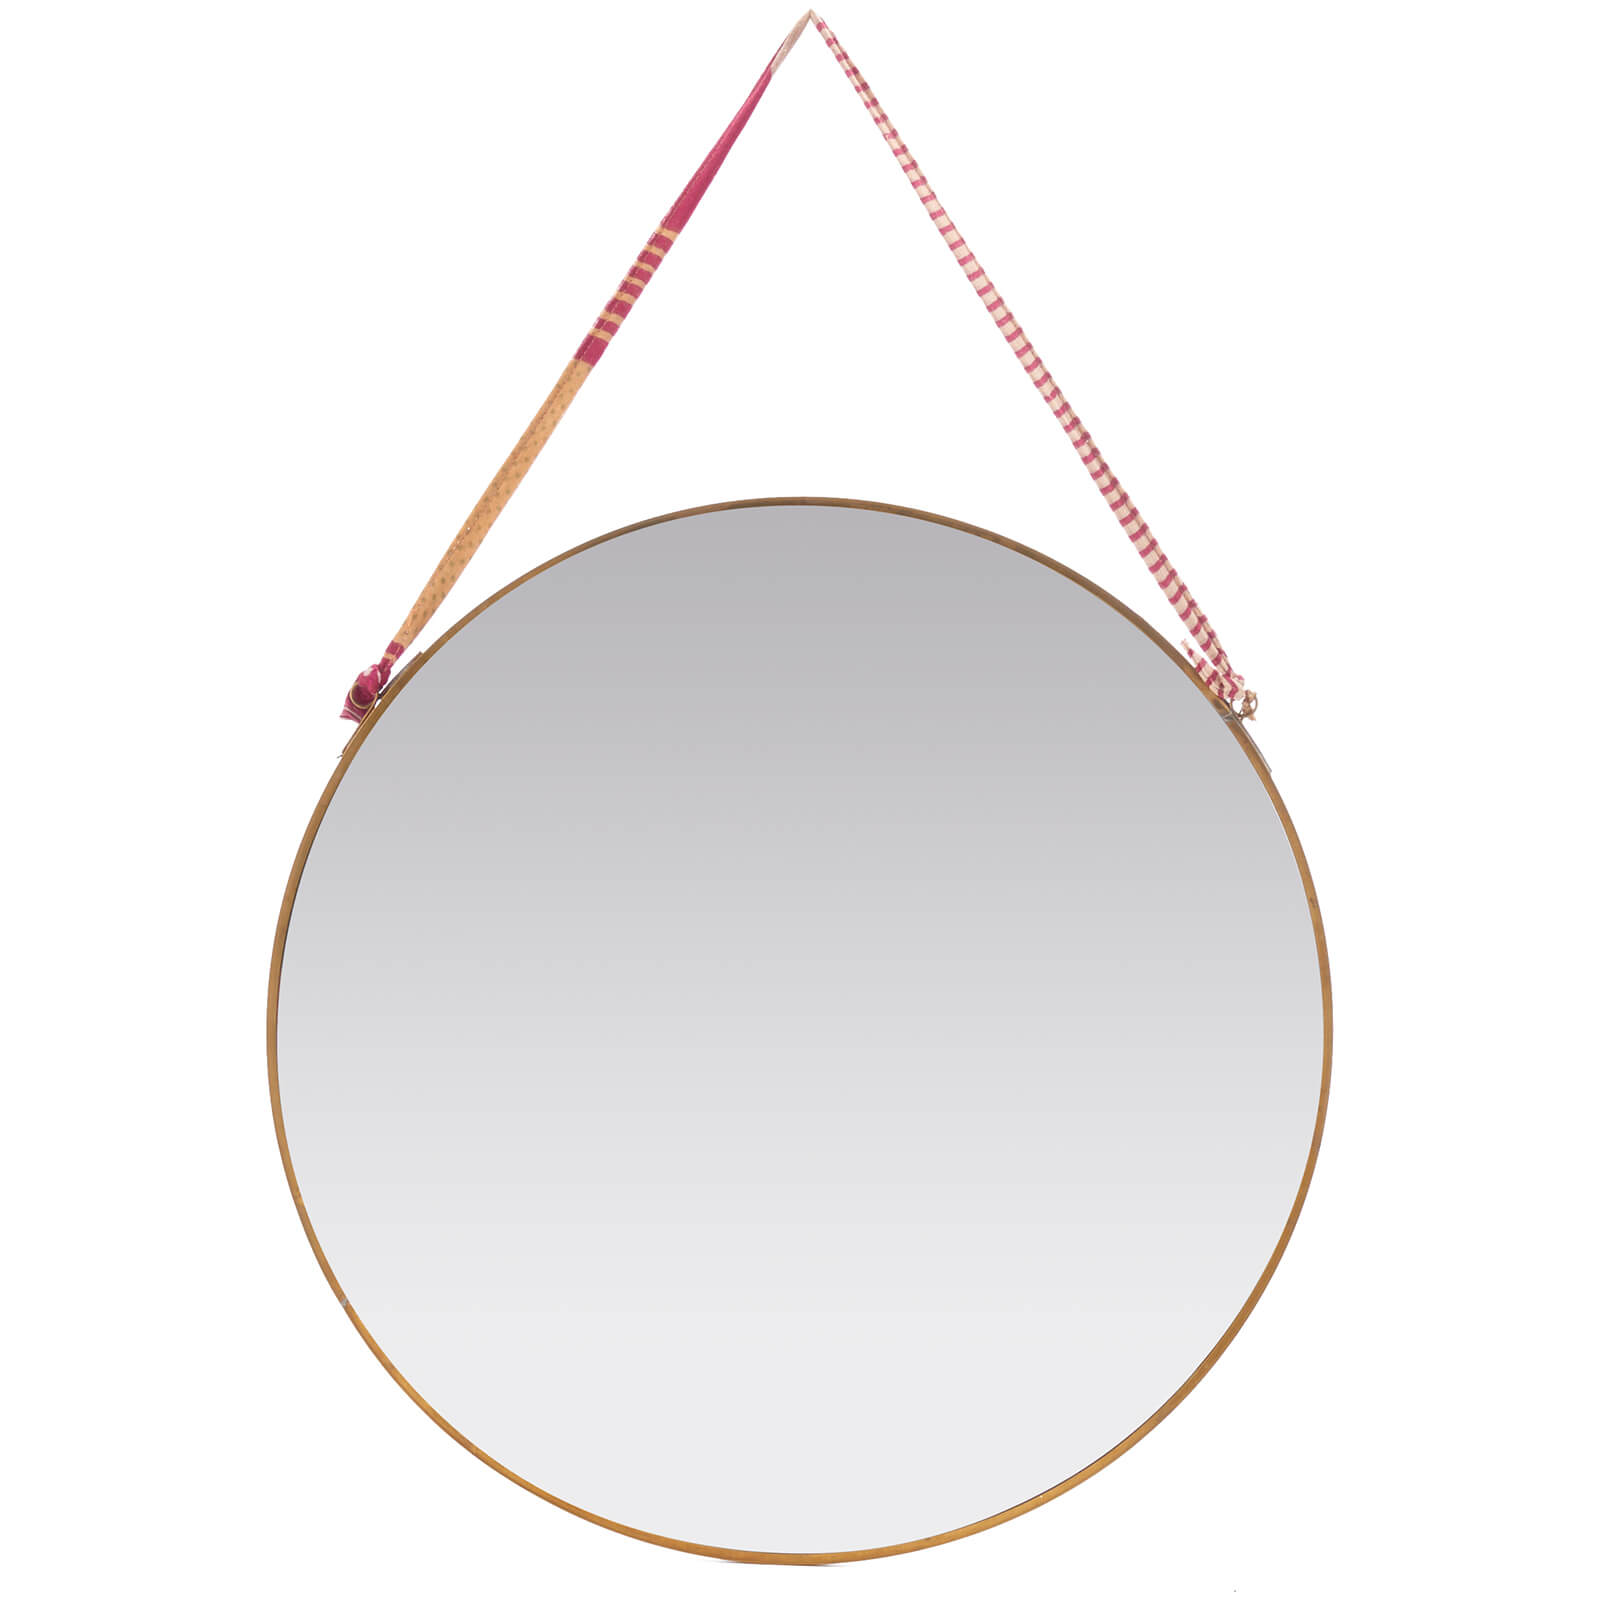 Nkuku Kiko Round Mirror Antique Brass Large Free Uk Delivery Available